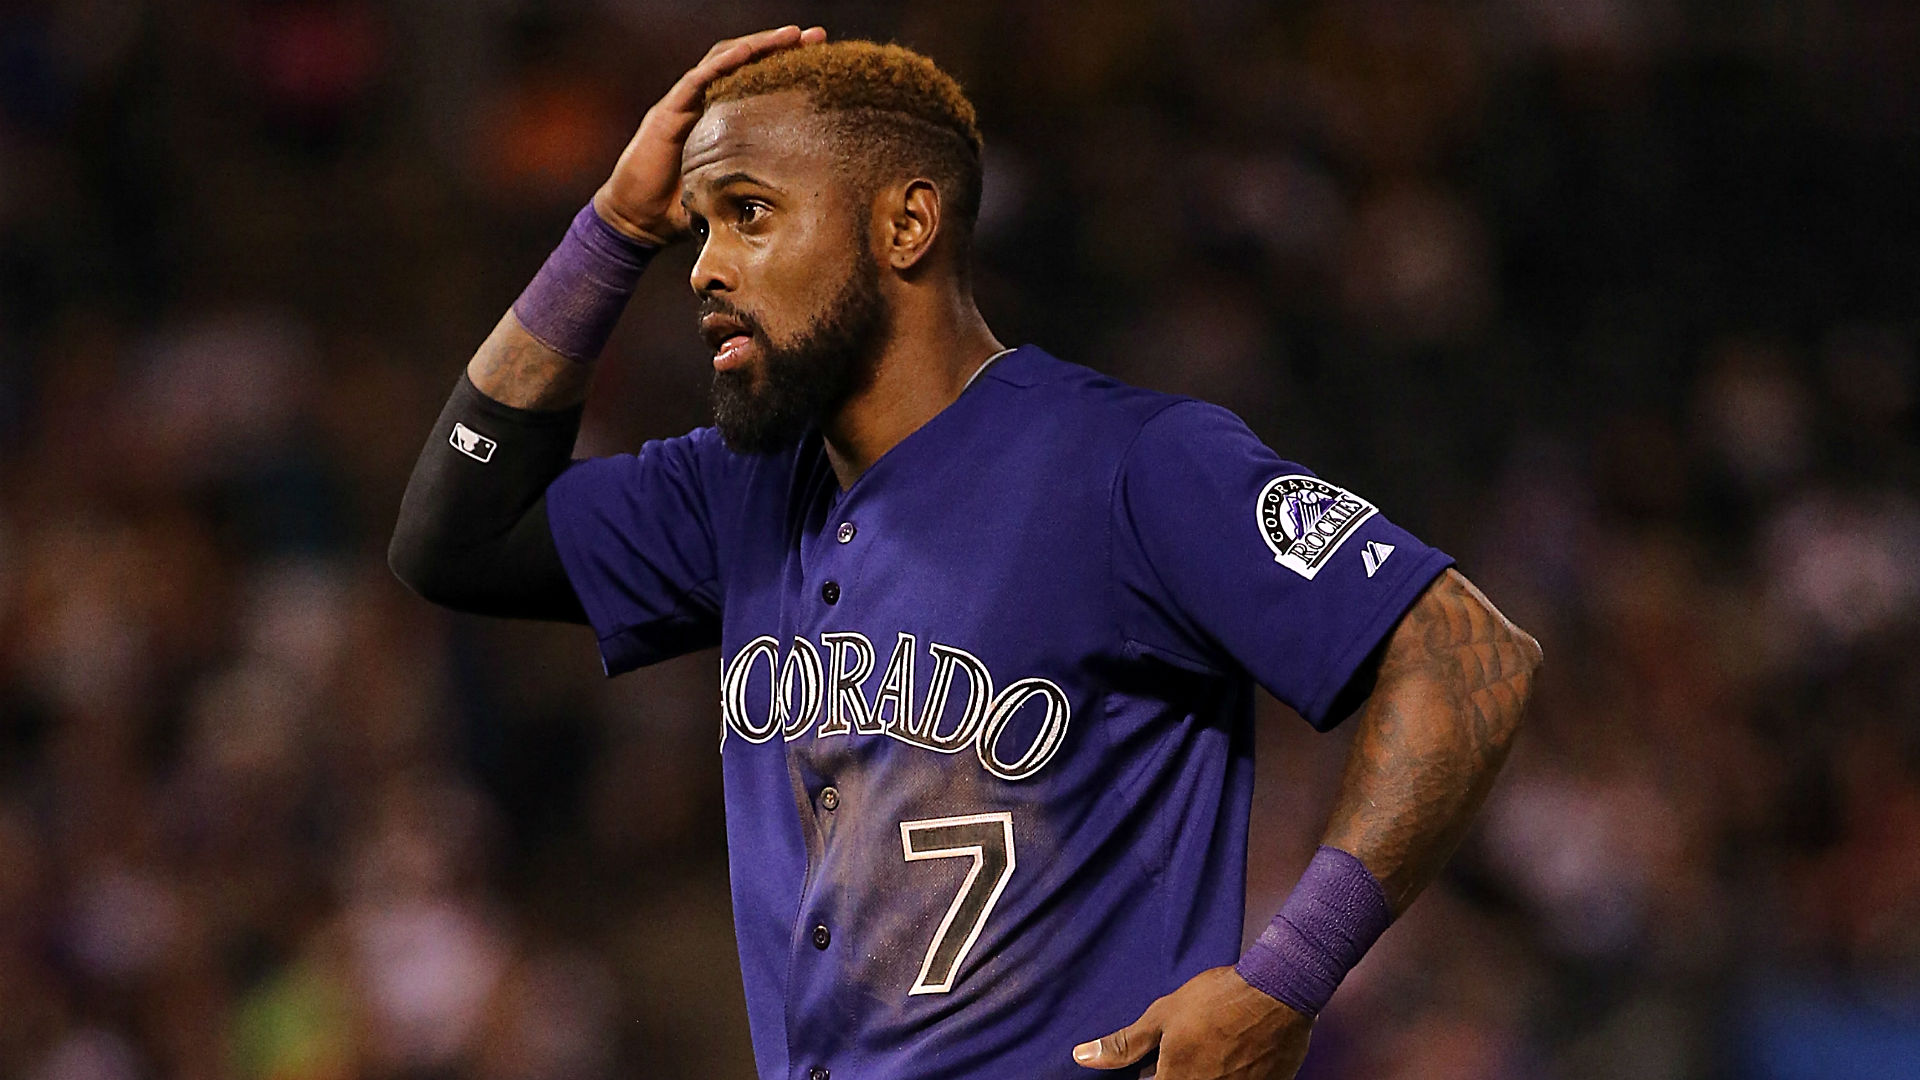 jose reyes facing hefty suspension under mlb's new domestic abuse policy